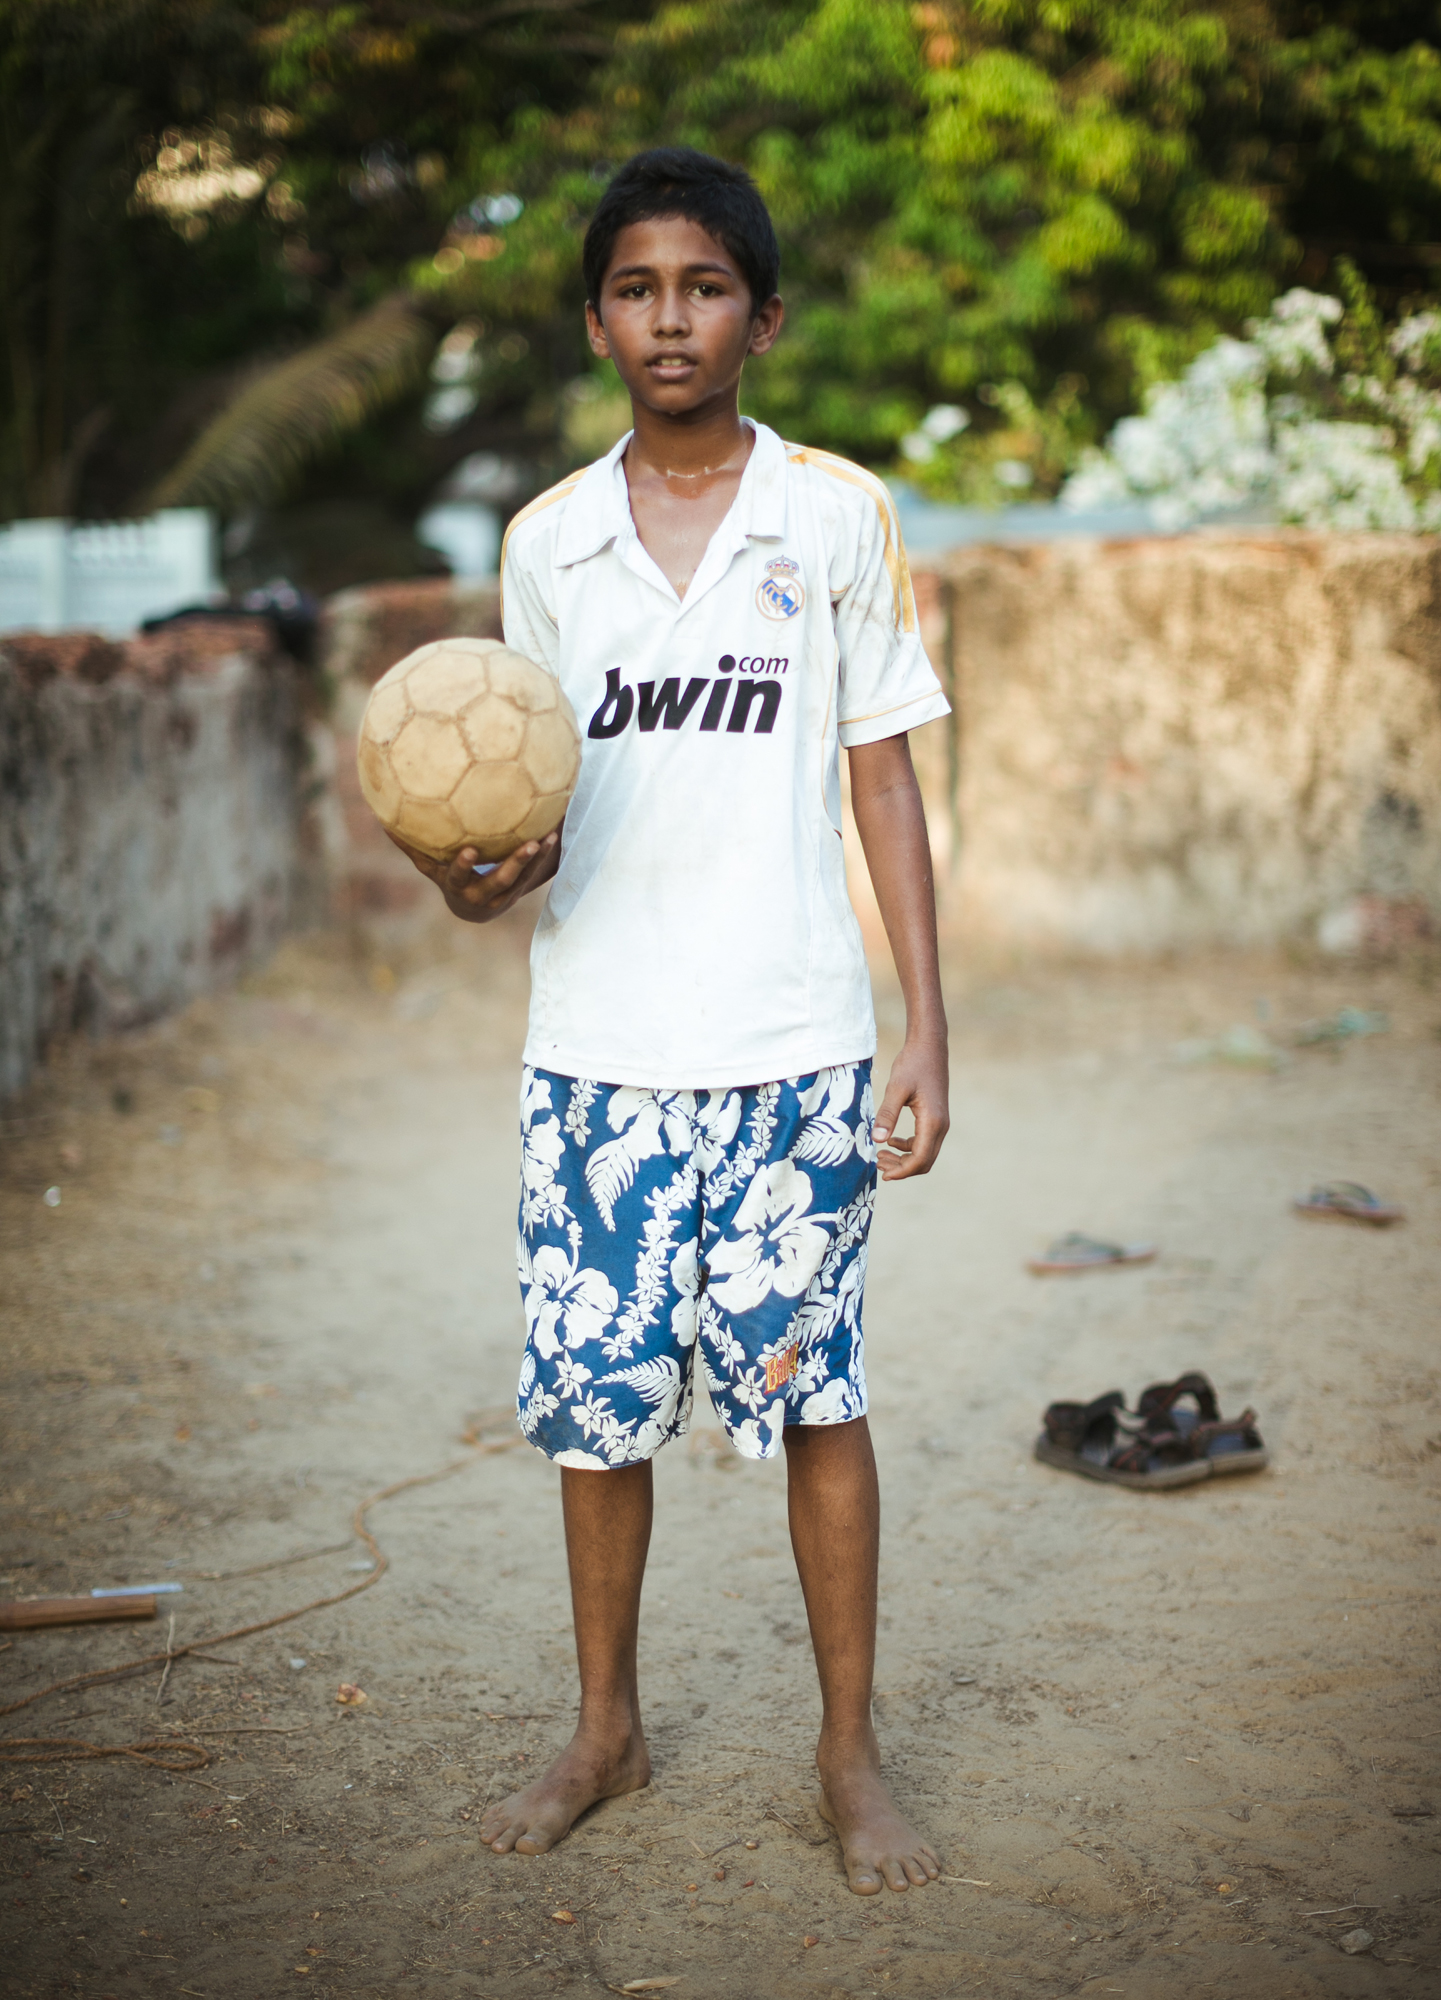 Kids playing football in Goa, India.